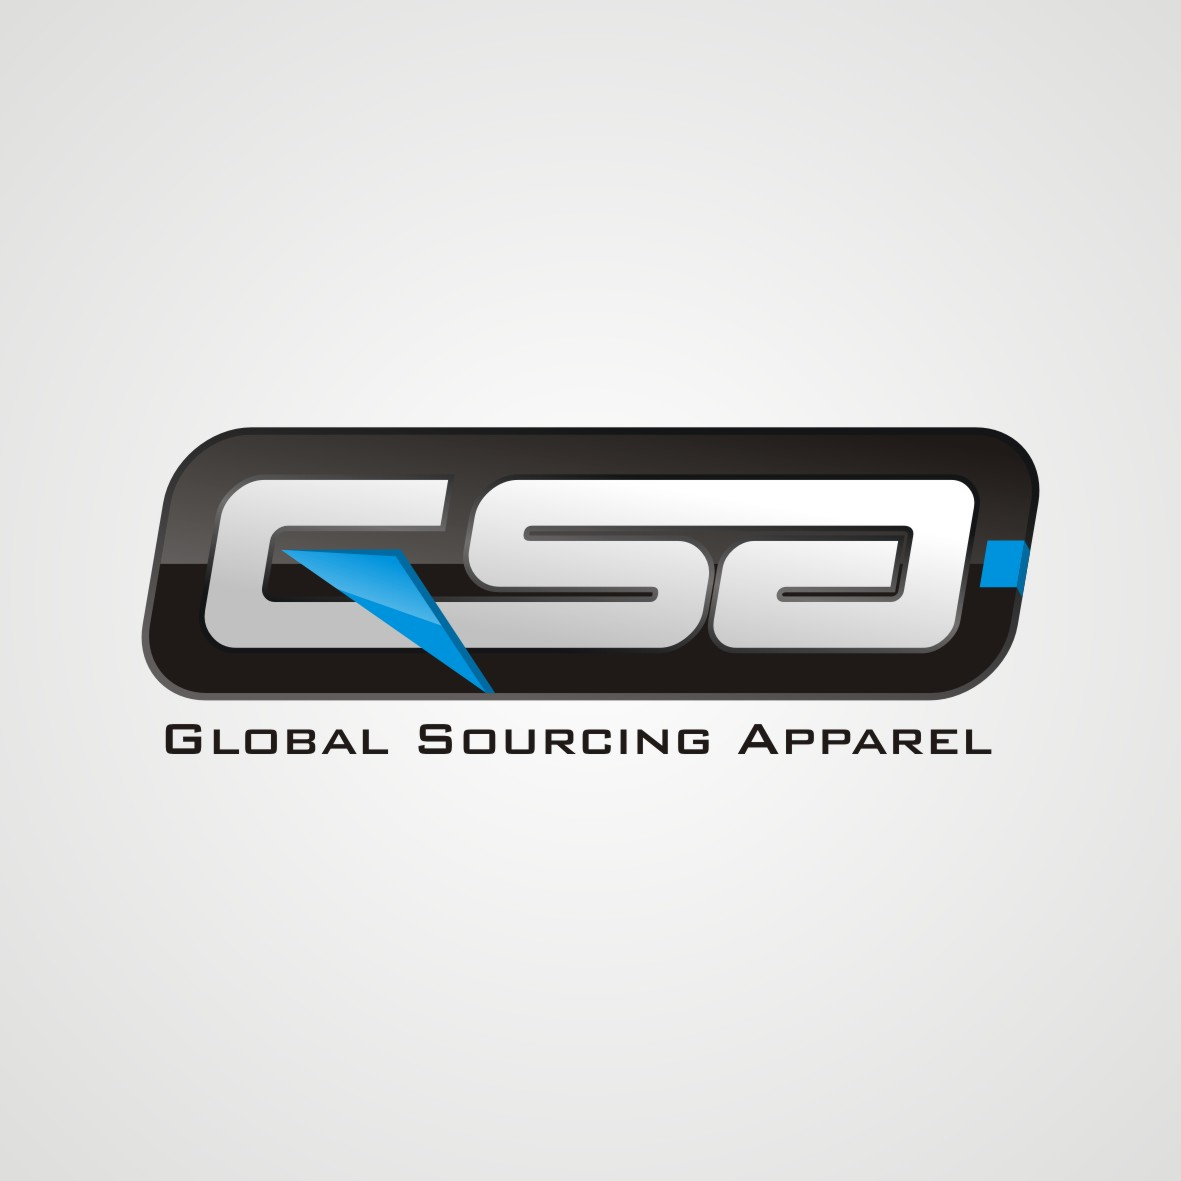 Logo Design by arteo_design - Entry No. 83 in the Logo Design Contest Fun Logo Design for Global Sourcing Apparel.